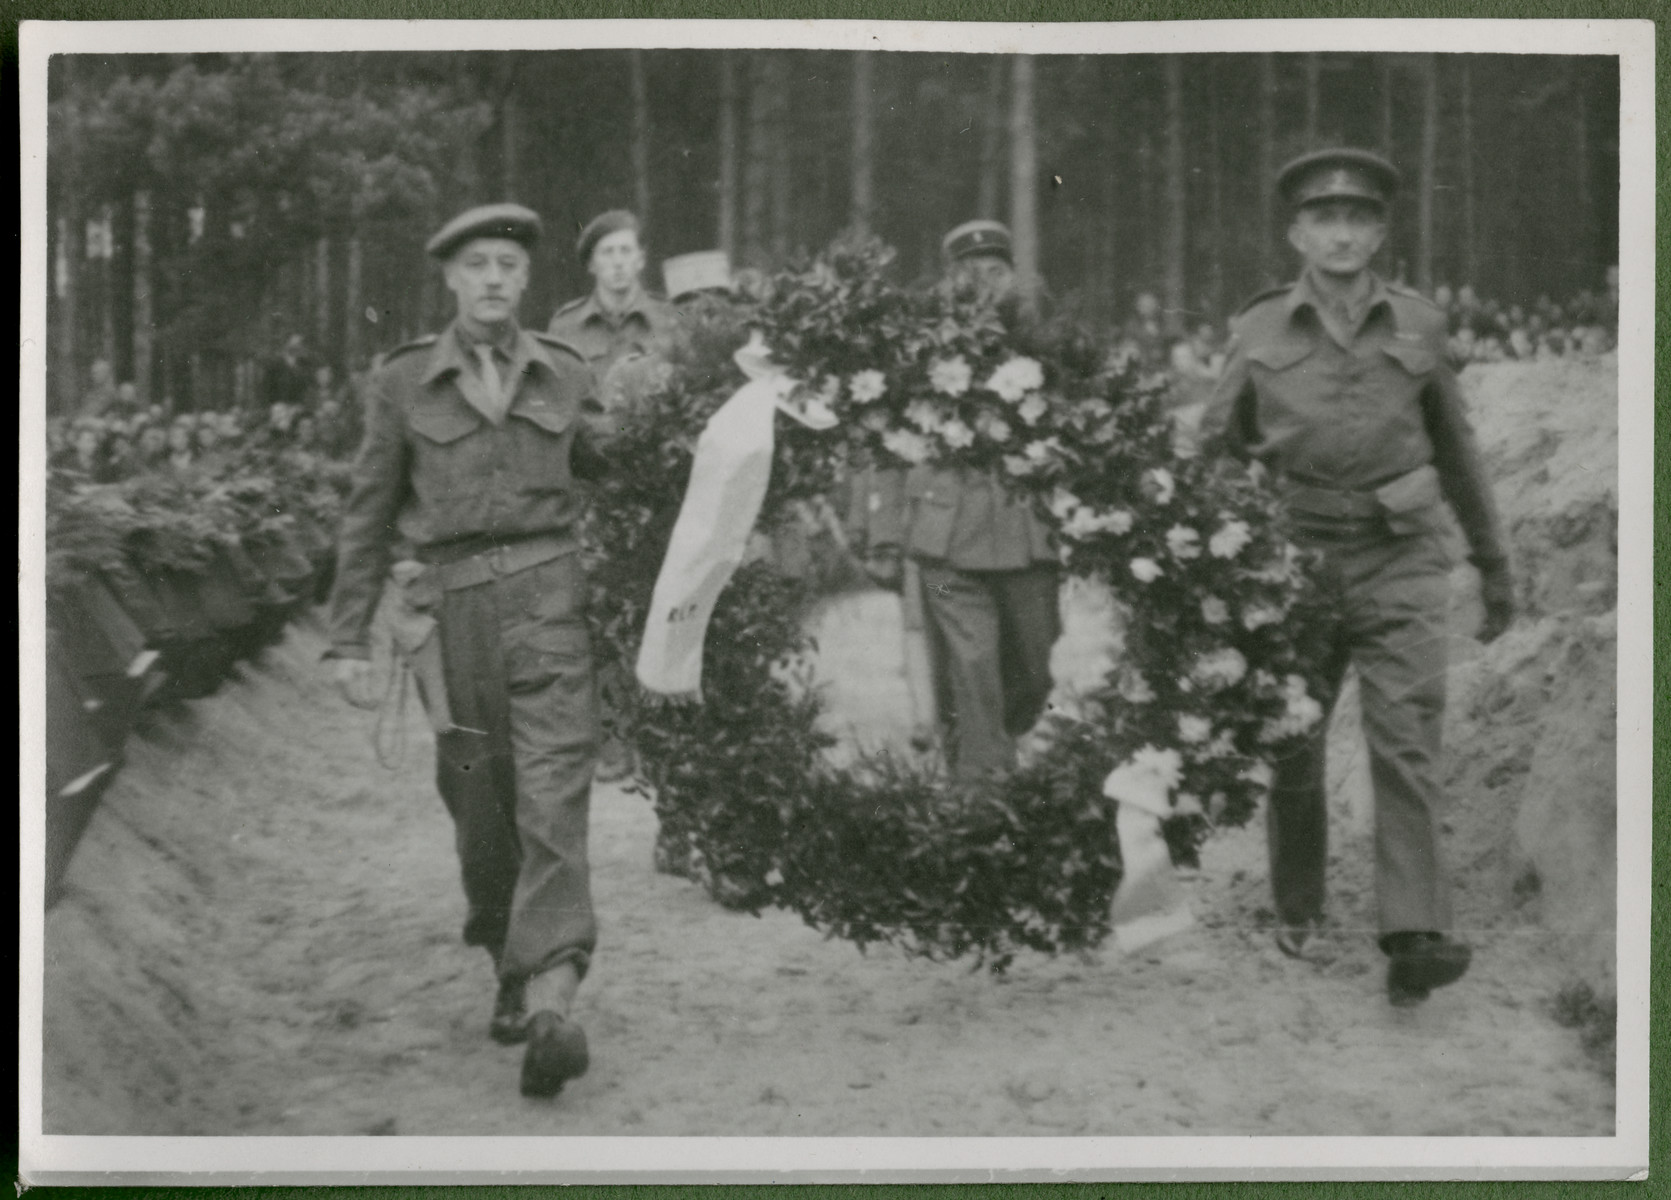 Major Shipway and Lt. Marcel Frank carry a large floral wreath to the mass grave of 243 slave laborers who were shot by their guards on the railway lines at Lueneburg on the way to the Belsen Camp.